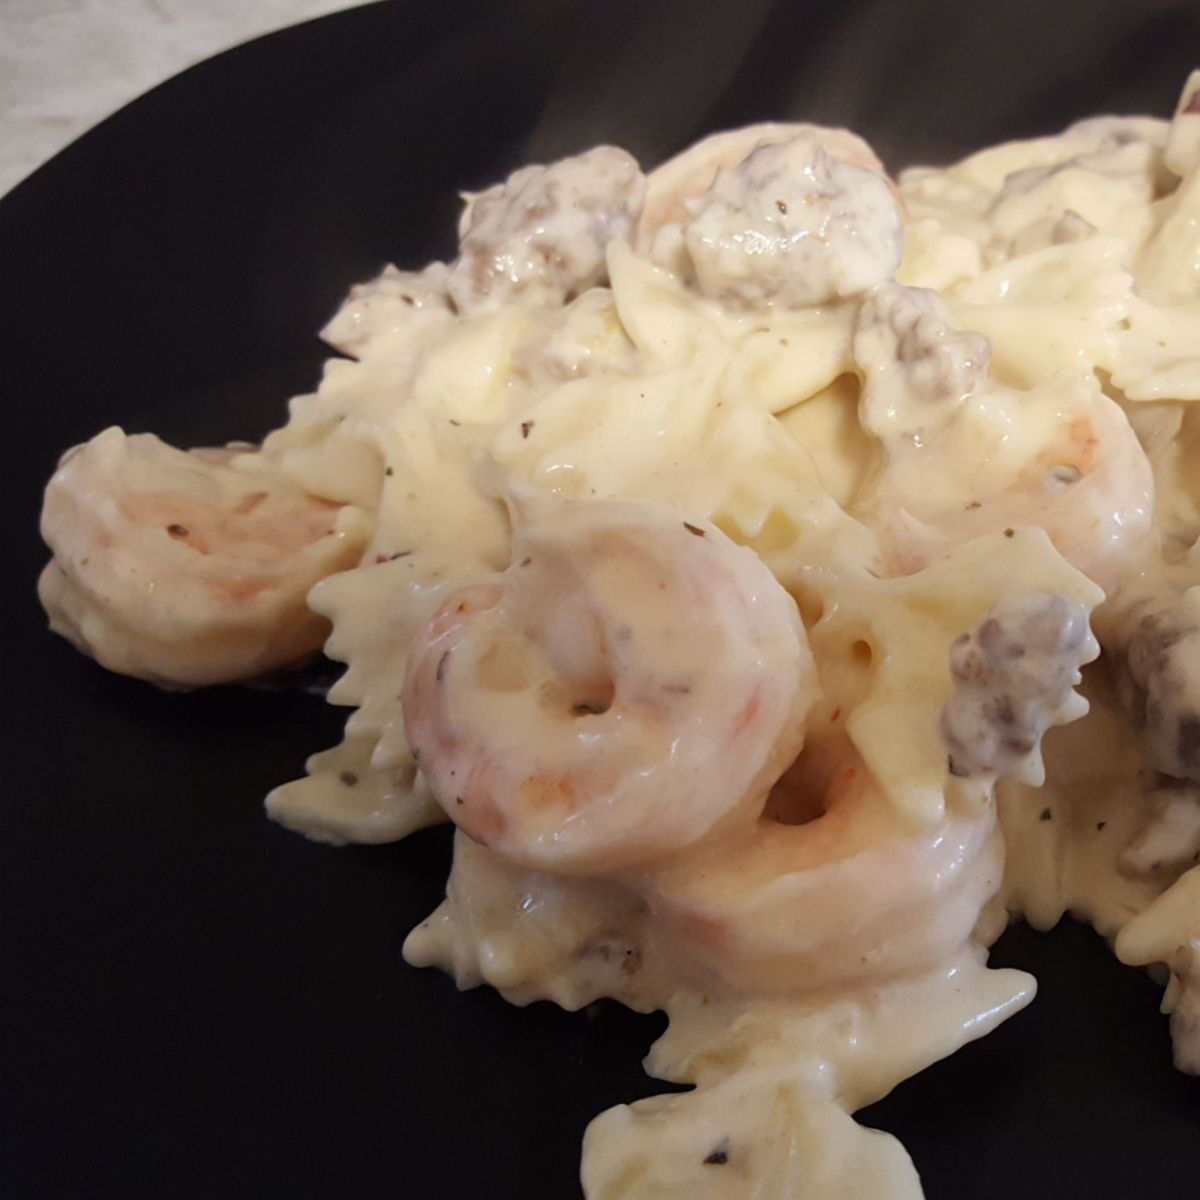 Spicy venison and succulent shrimp in a rich cream sauce makes this a perfect meal any night of the week.